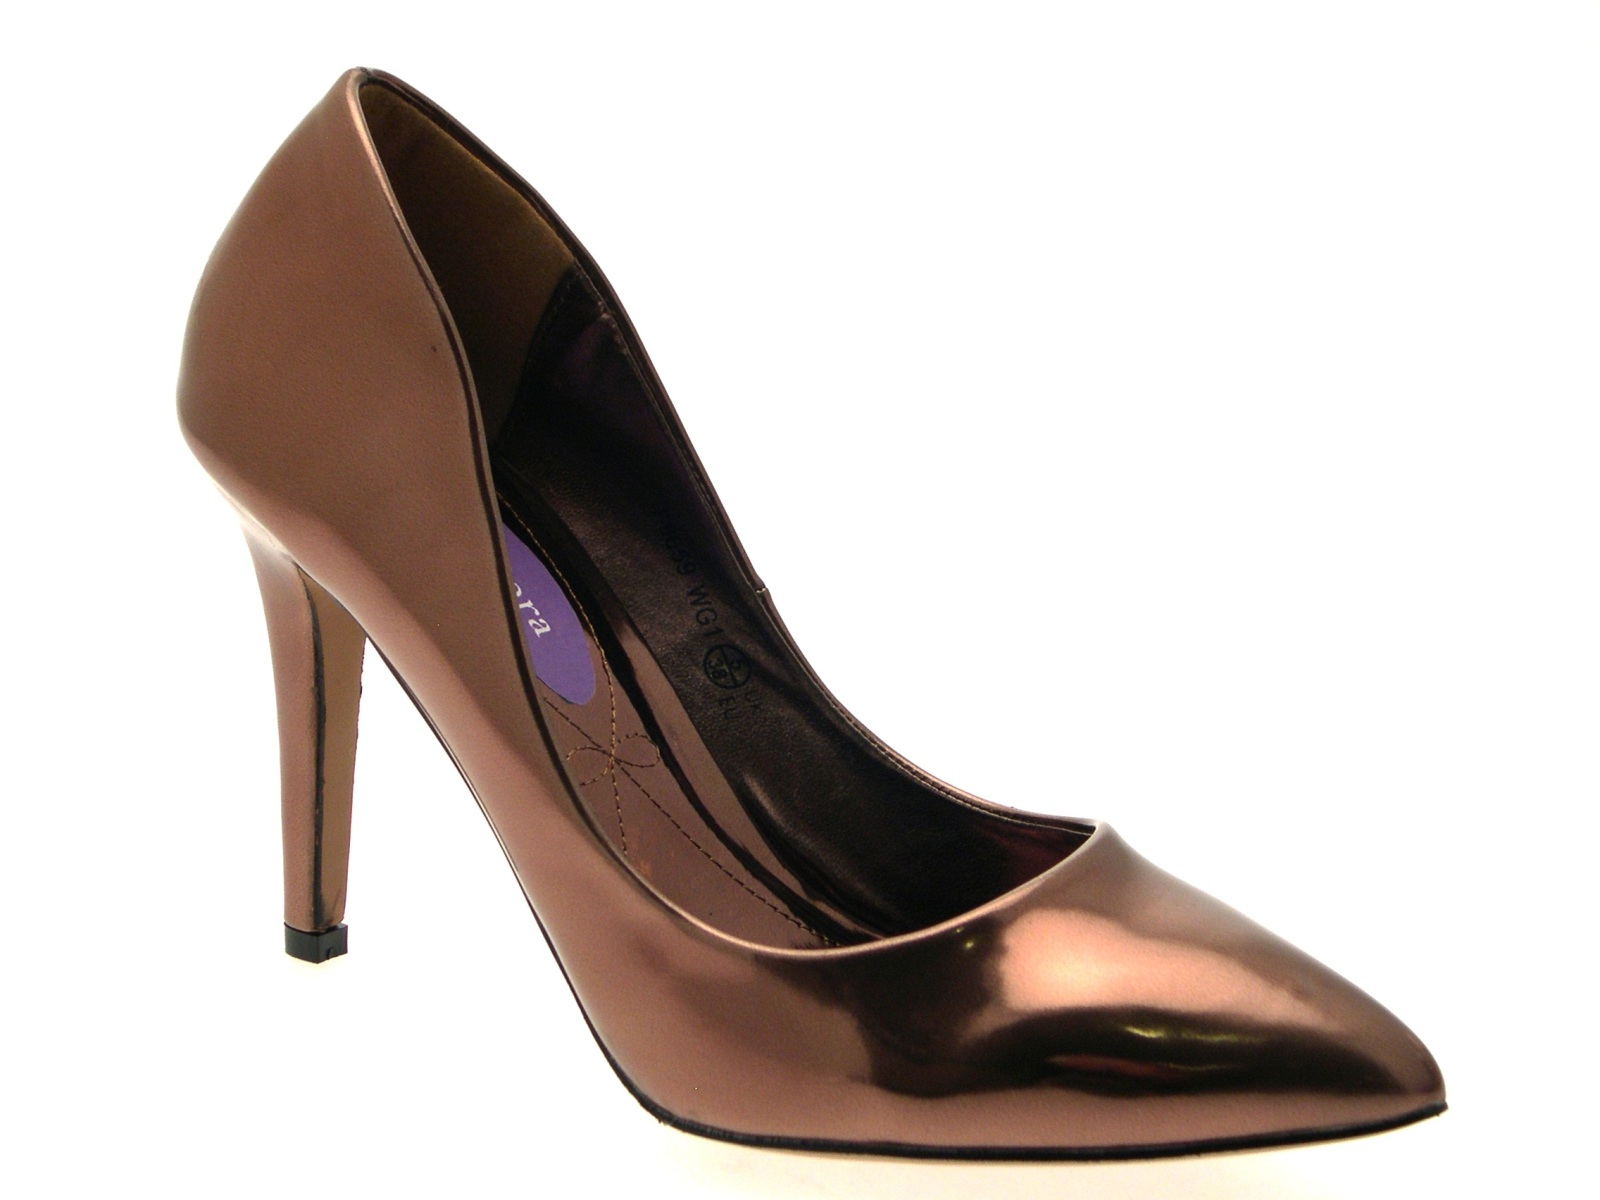 Womens-Metallic-Pointed-Toe-Court-Stiletto-High-Heels-Ladies-Work-Office-Shoes thumbnail 10